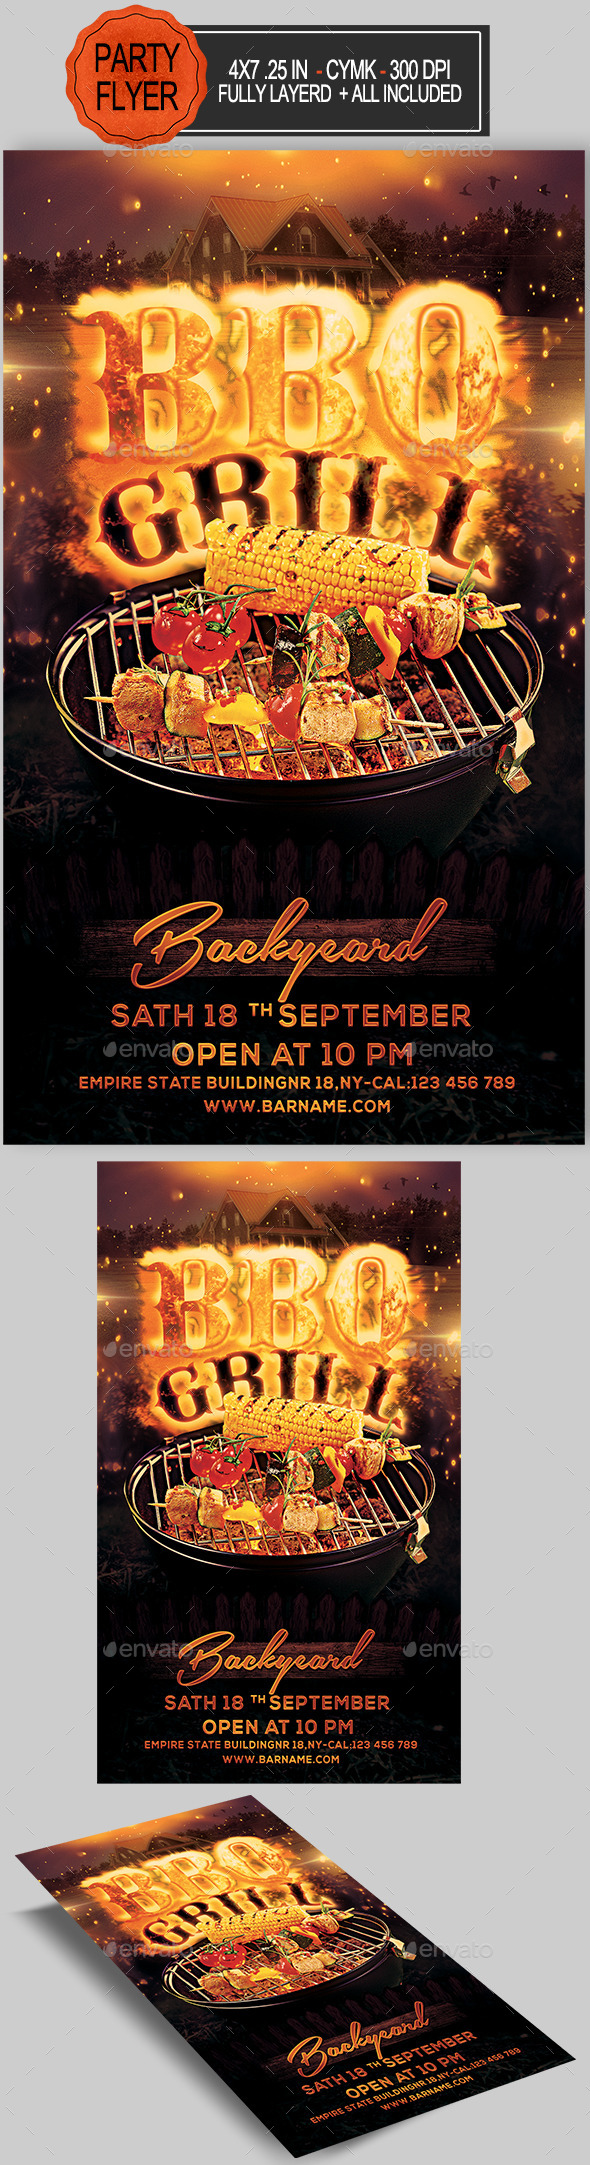 Bbq Grill Backyard Flyer - Clubs & Parties Events